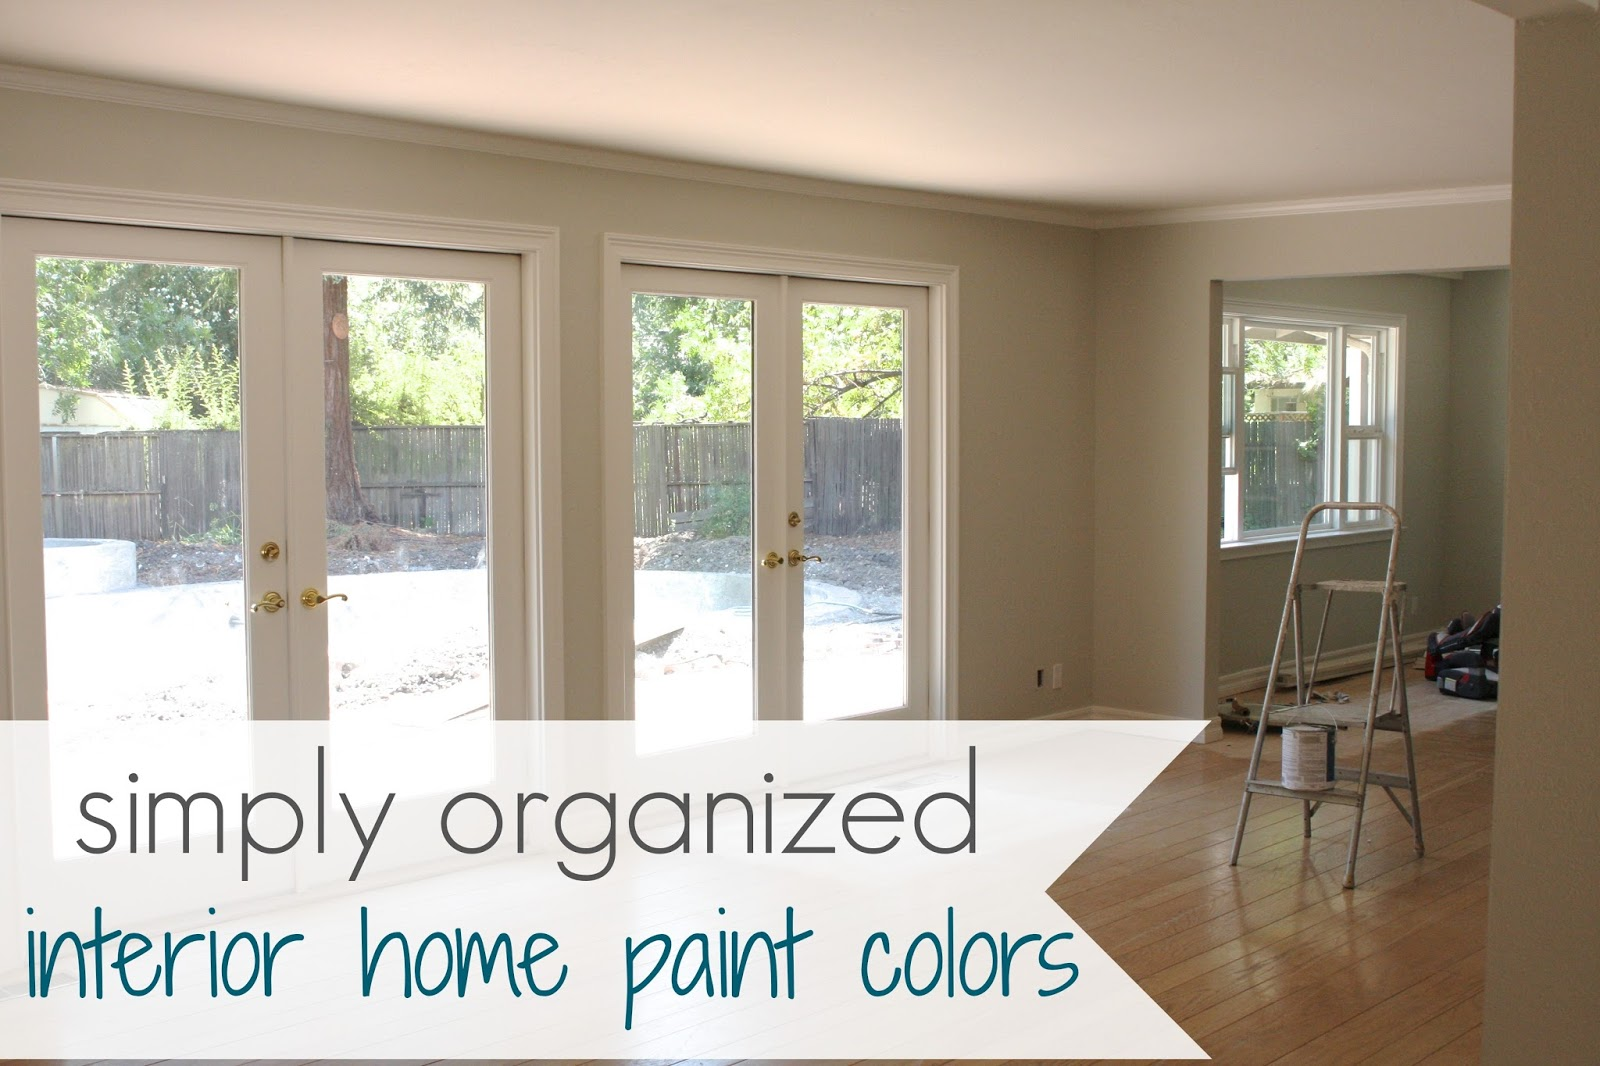 My home interior paint color palate simply organized for Paints for house interior photos